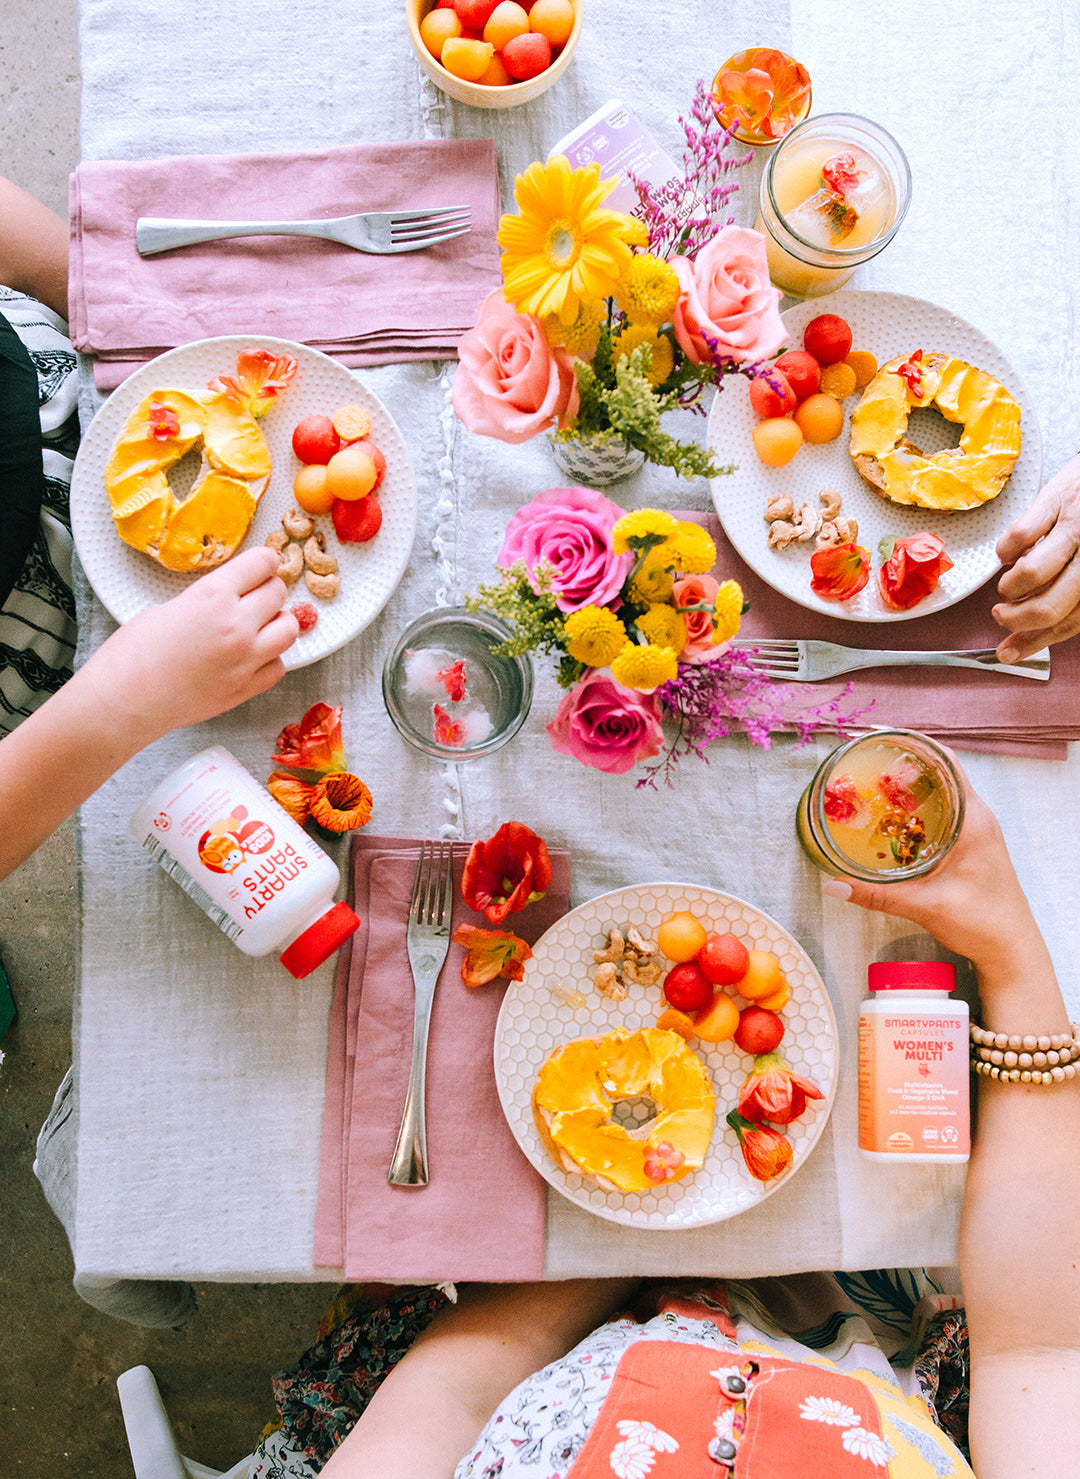 A table set, shot from above. On the table are flower bouquets, breakfast plates with bagels and fruit, and SmartyPants Vitamins vitamins. We see the hands of the grandmother, mother and daughter.